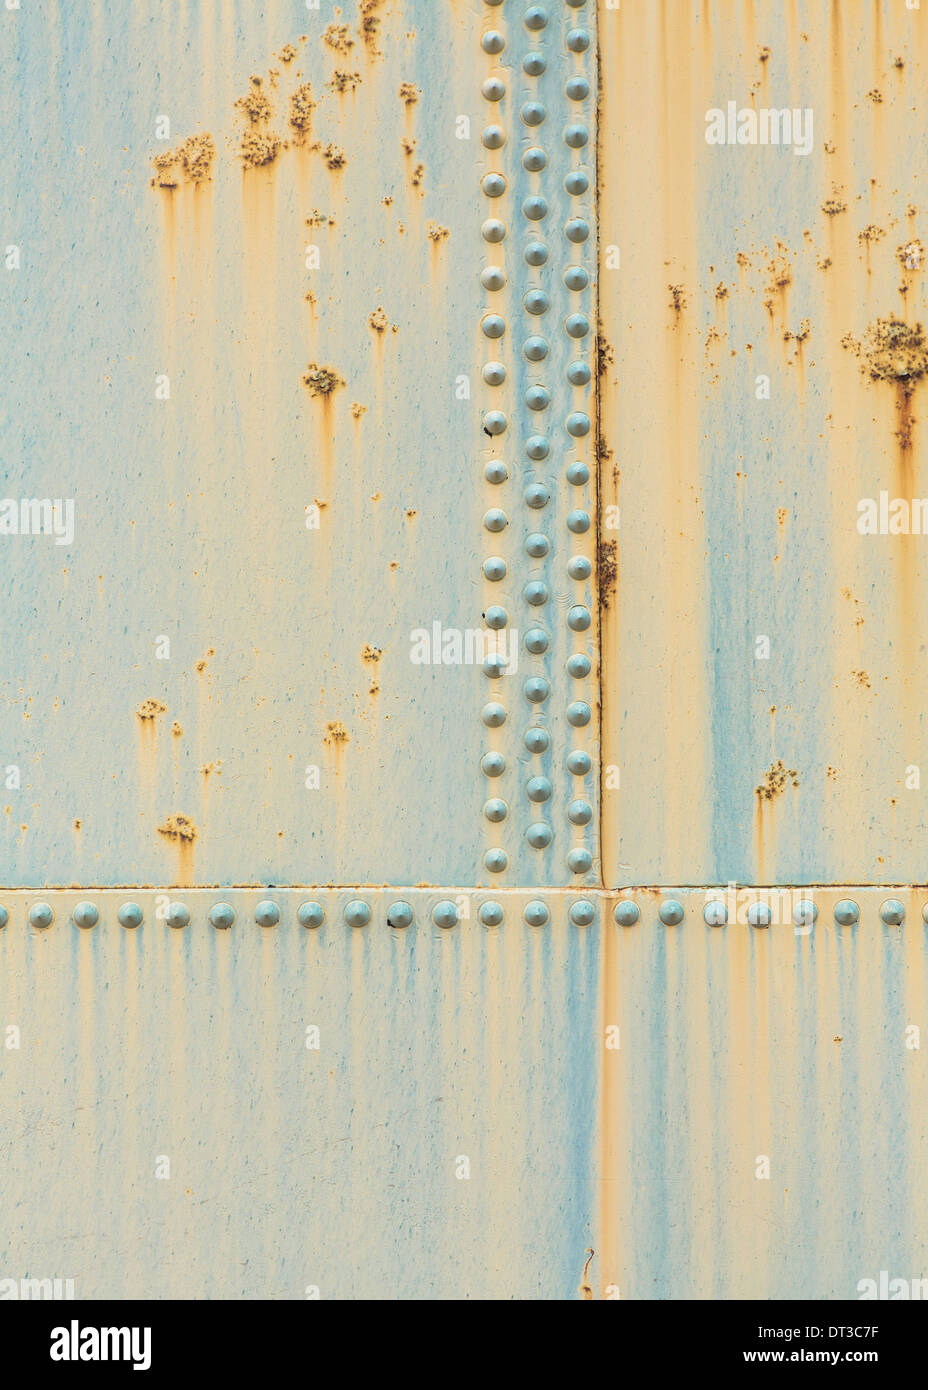 Detail of rusty oil storage container - Stock Image